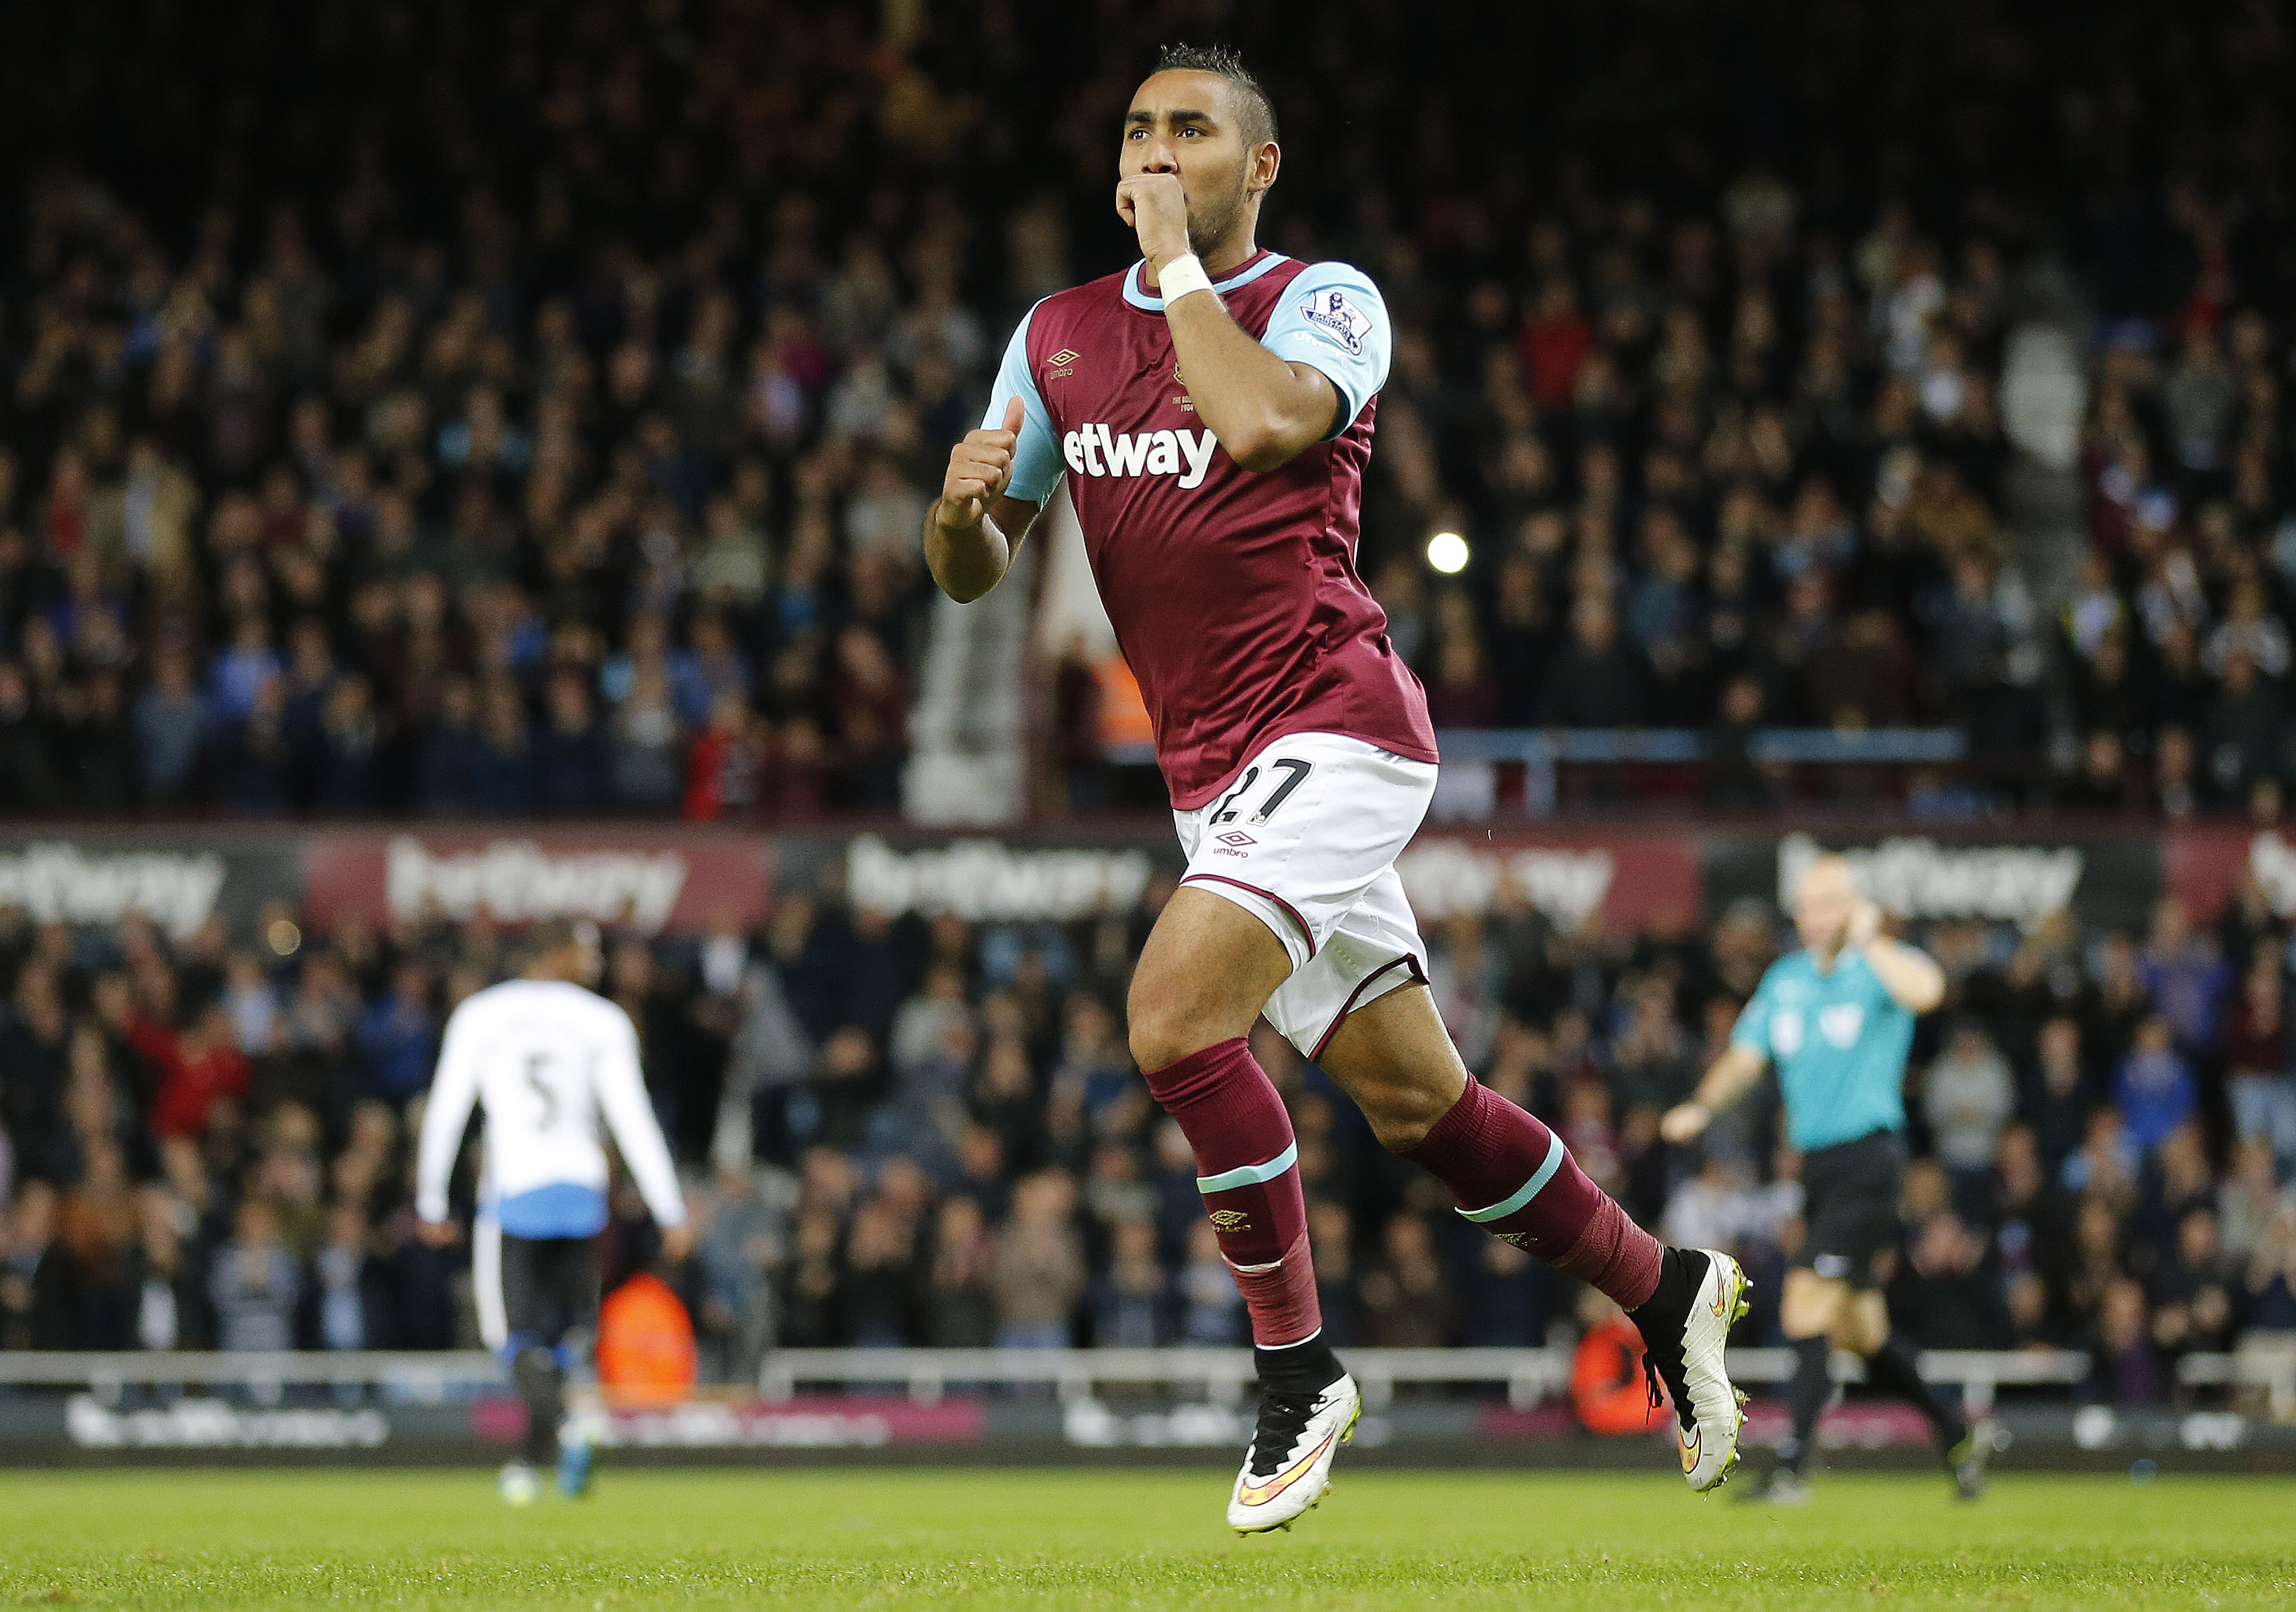 West Ham's Dimitri Payet celebrates after scoring during the English Premier League soccer match between West Ham and Newcastle at Boleyn Ground in London, Monday, Sept. 14, 2015.(AP Photo/Frank Augstein)